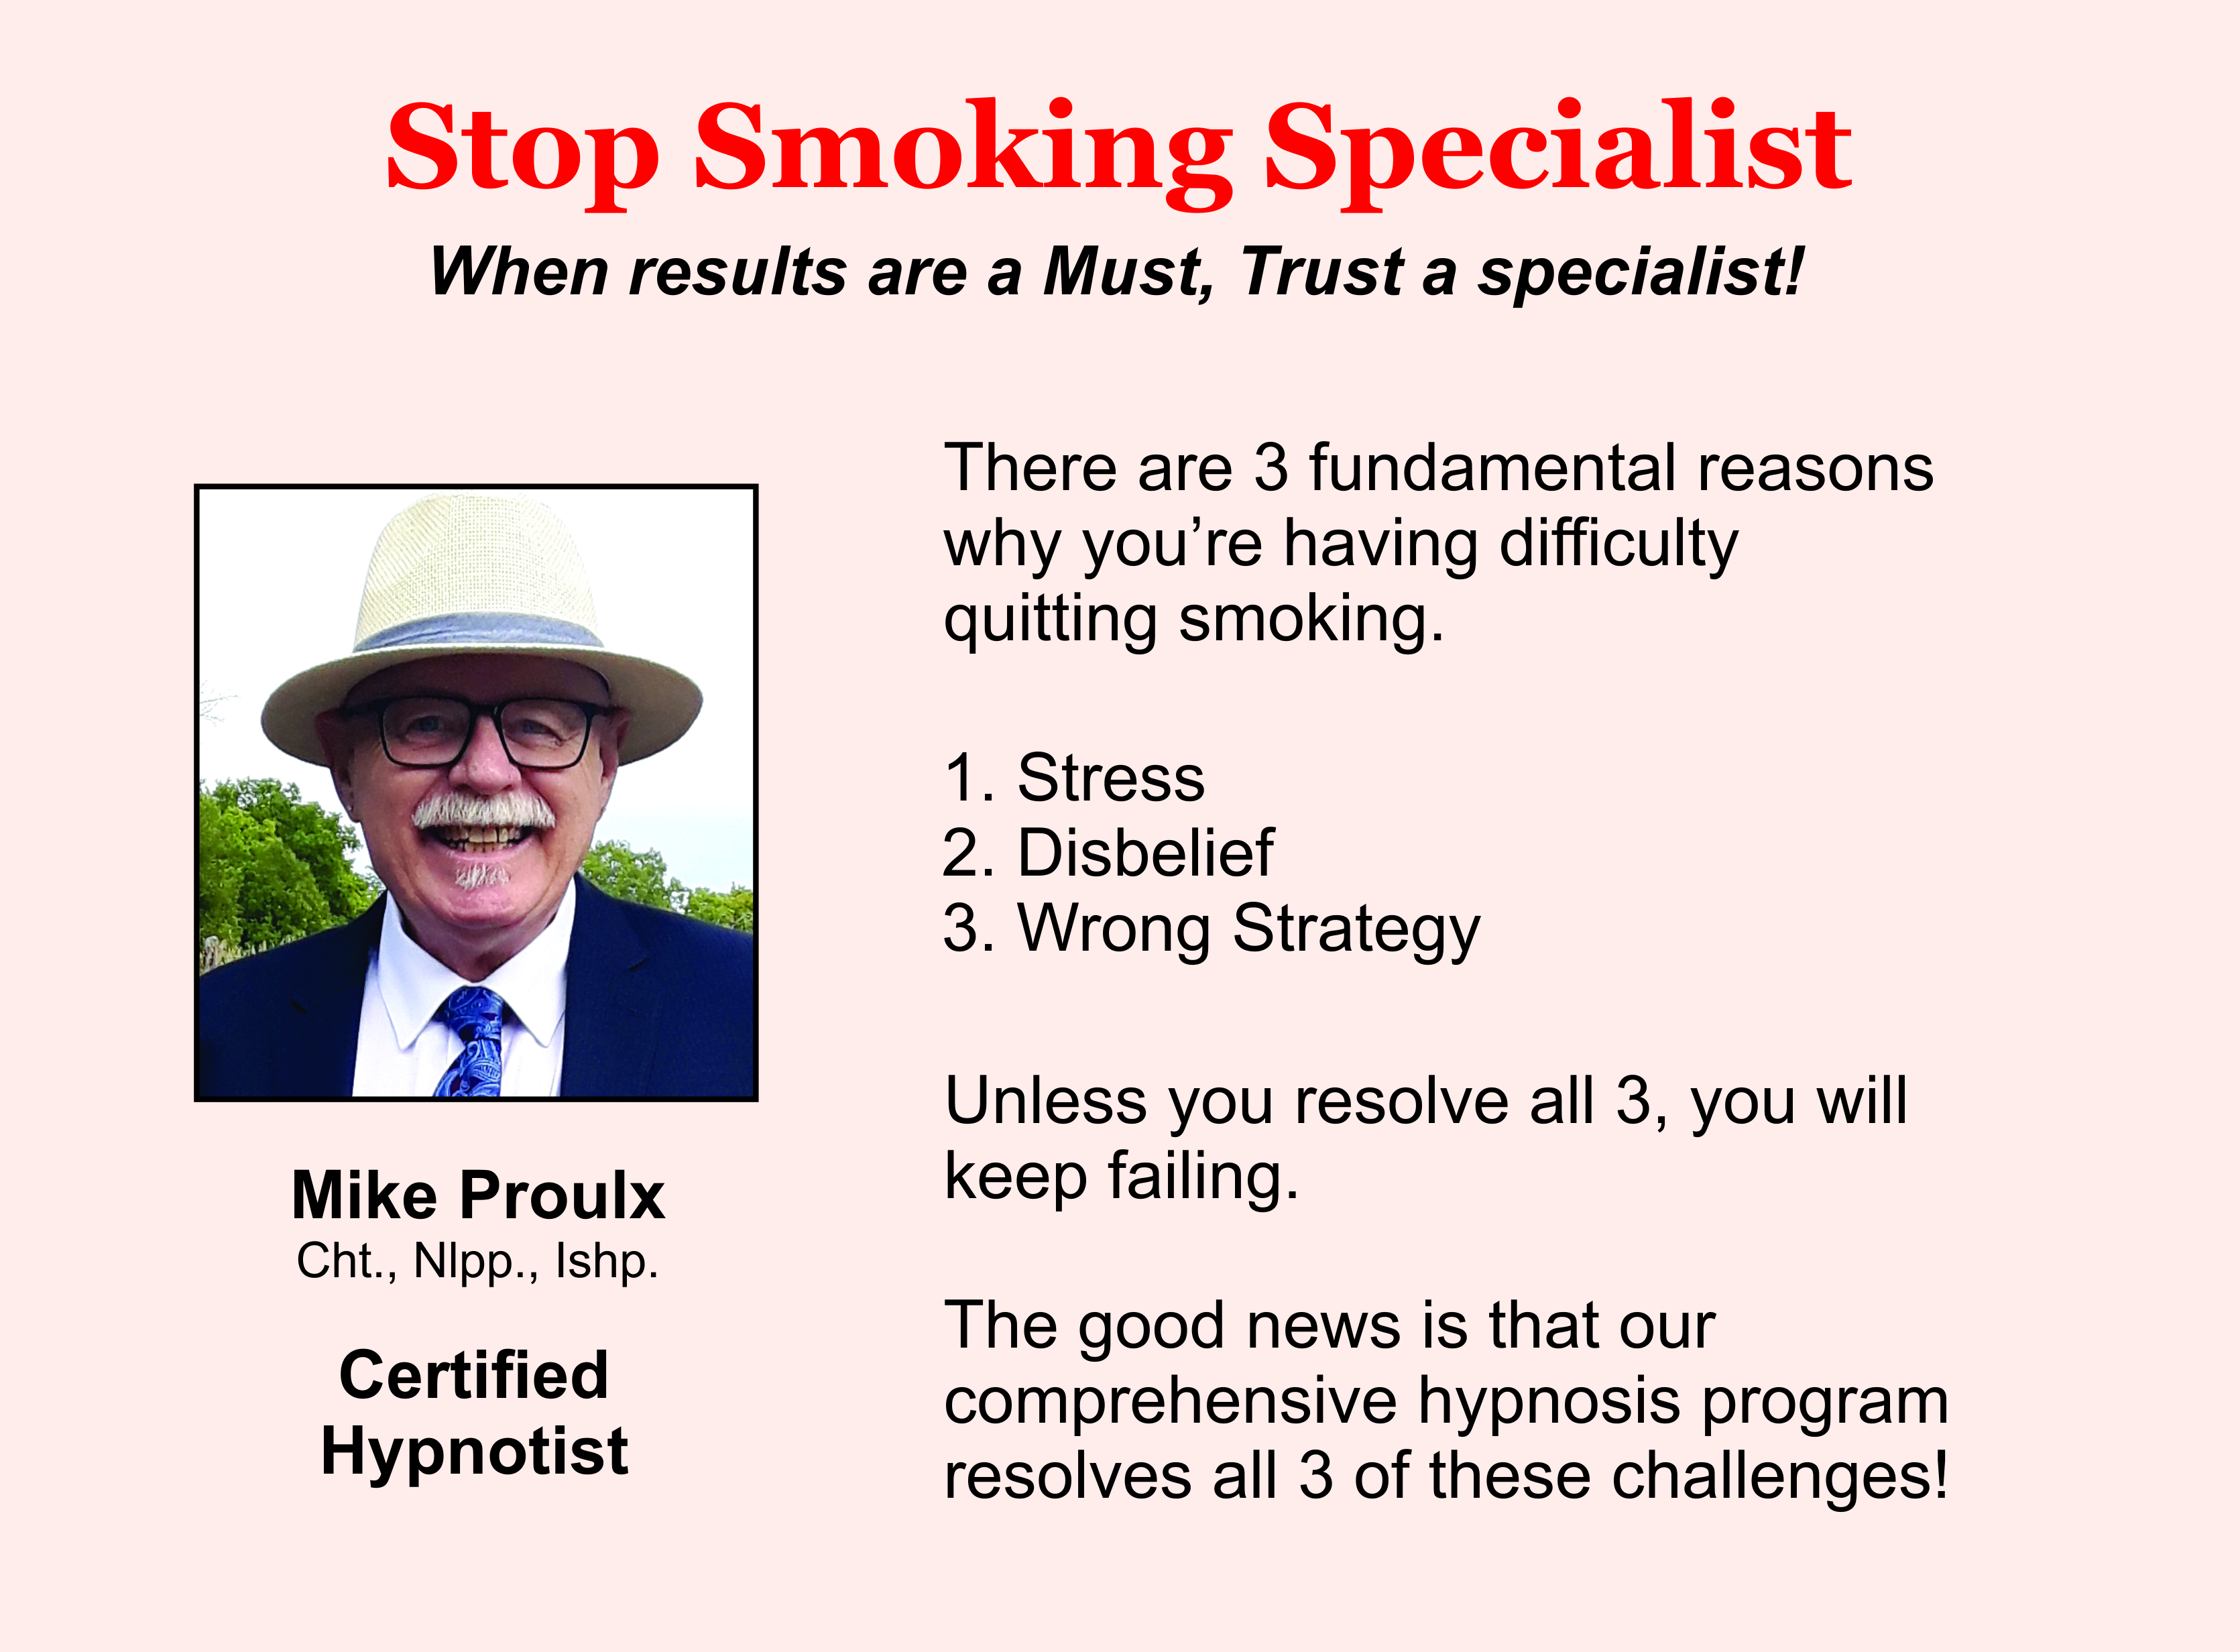 Stop Smoking Specialist. When results are a must, trust a specialist. There are 3 fundamental reasons why you're having difficulty quitting smoking: Stress. Disbelief. Wrong strategy. Unless you resolve all 3 you will keep on failing. The good news is that our comprehensive hypnosis program resolves all 3 of these challenges. Mike Proulx. Certified Hypnotist. Photo of Mike Proulx.